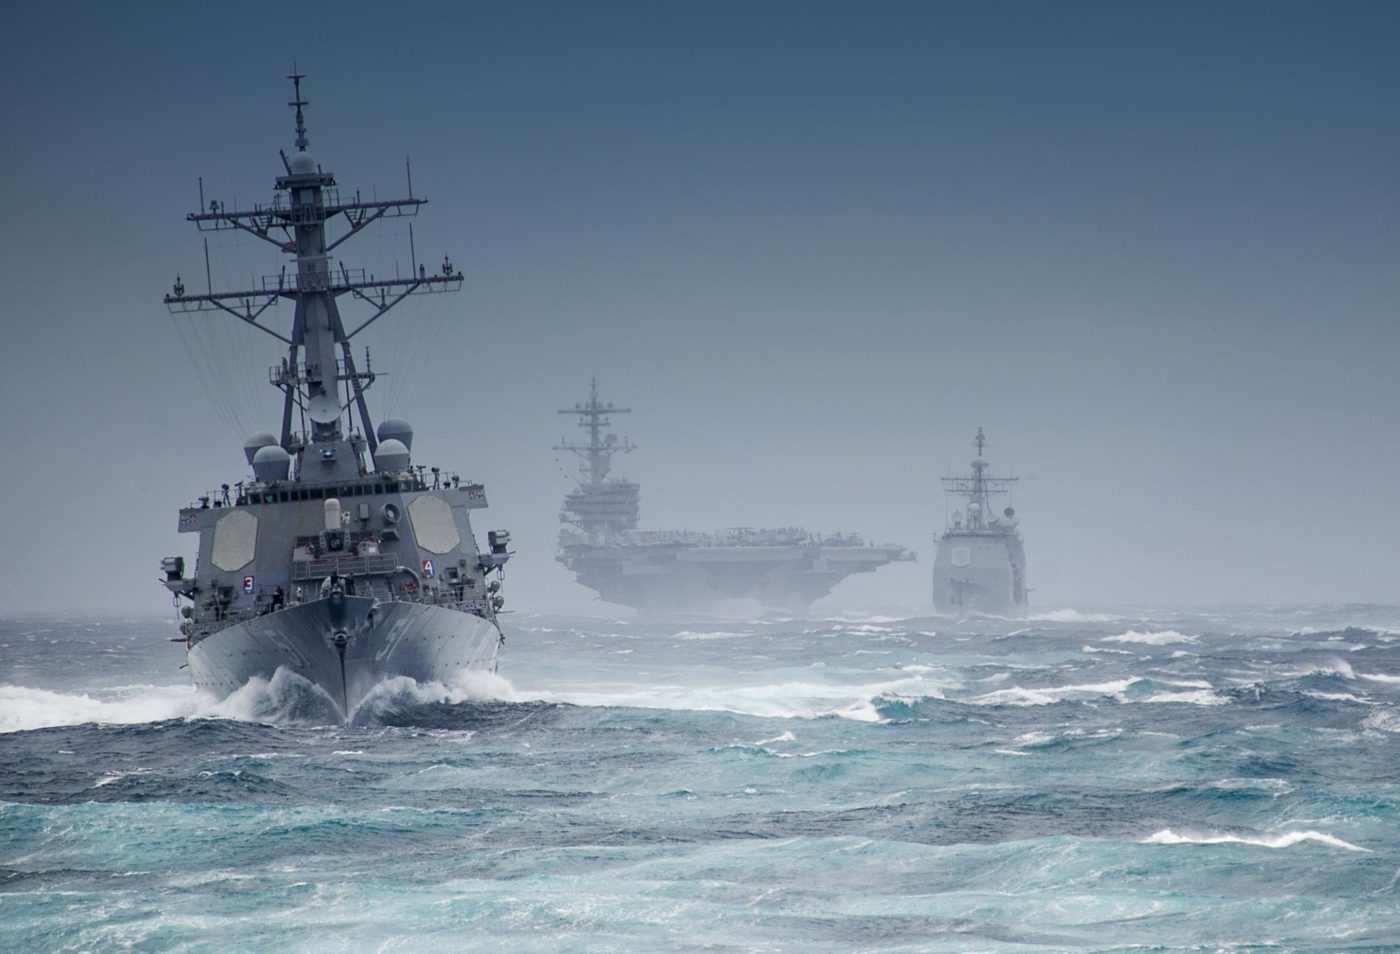 naval-warship-and-aricraft-carrier-on-choppy-sea